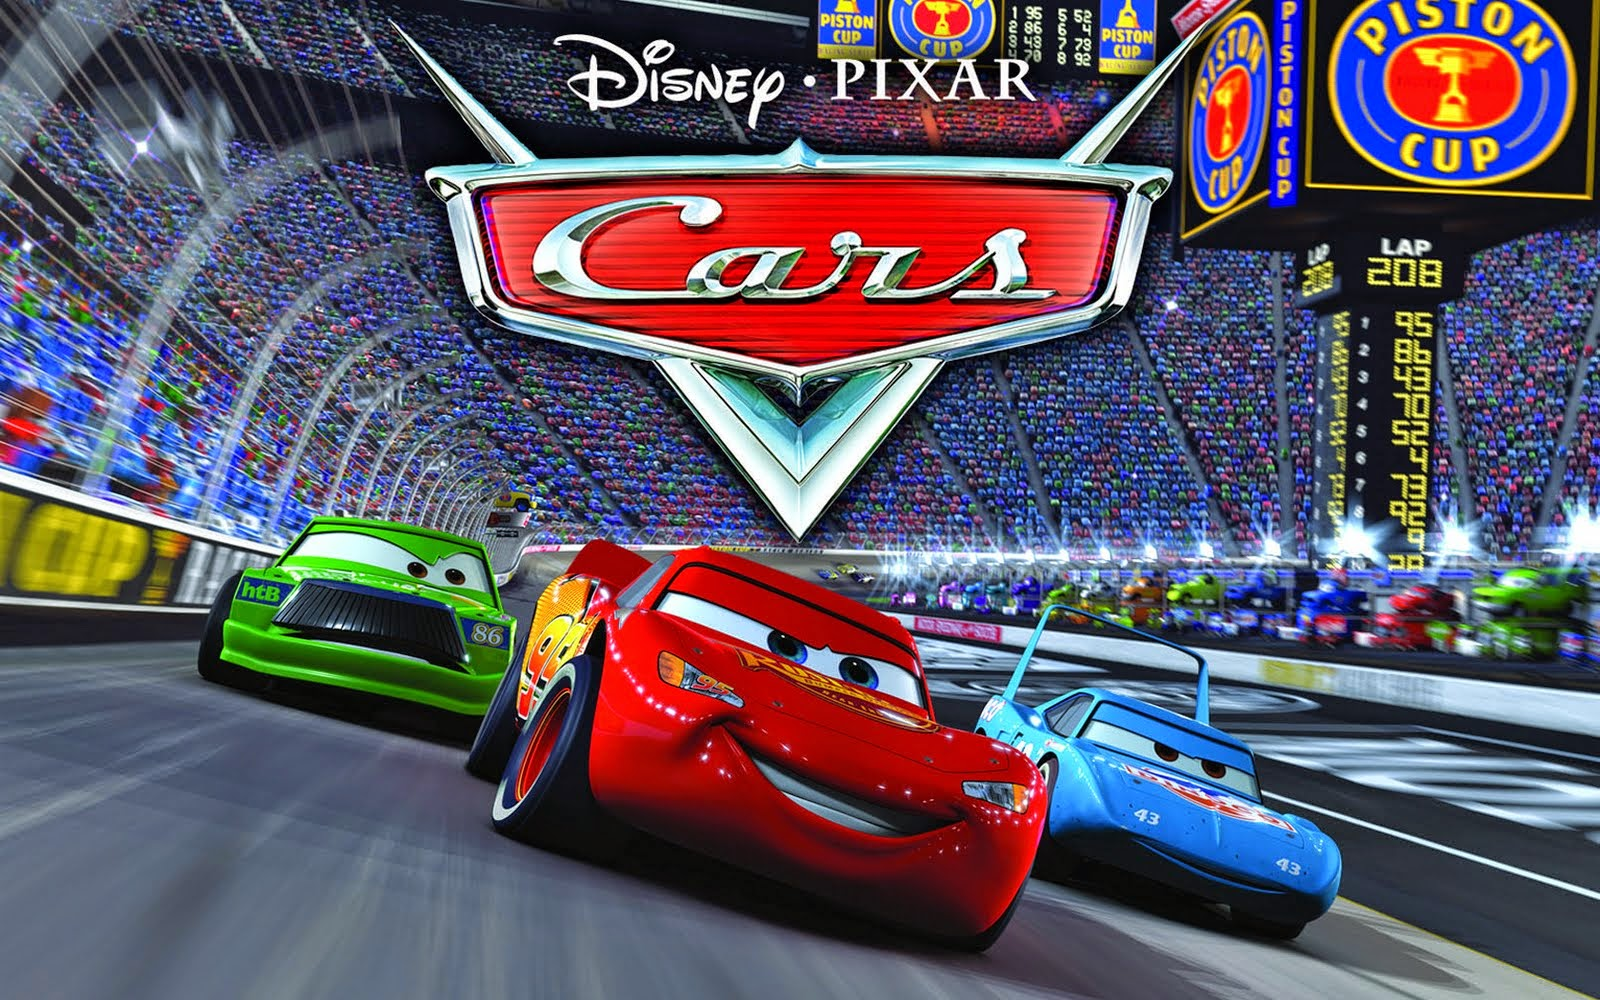 cars 1 2006 kartun usa brrip 1080p anoxmous 1994 mb google drive amadei33 biggest gdrv move. Black Bedroom Furniture Sets. Home Design Ideas